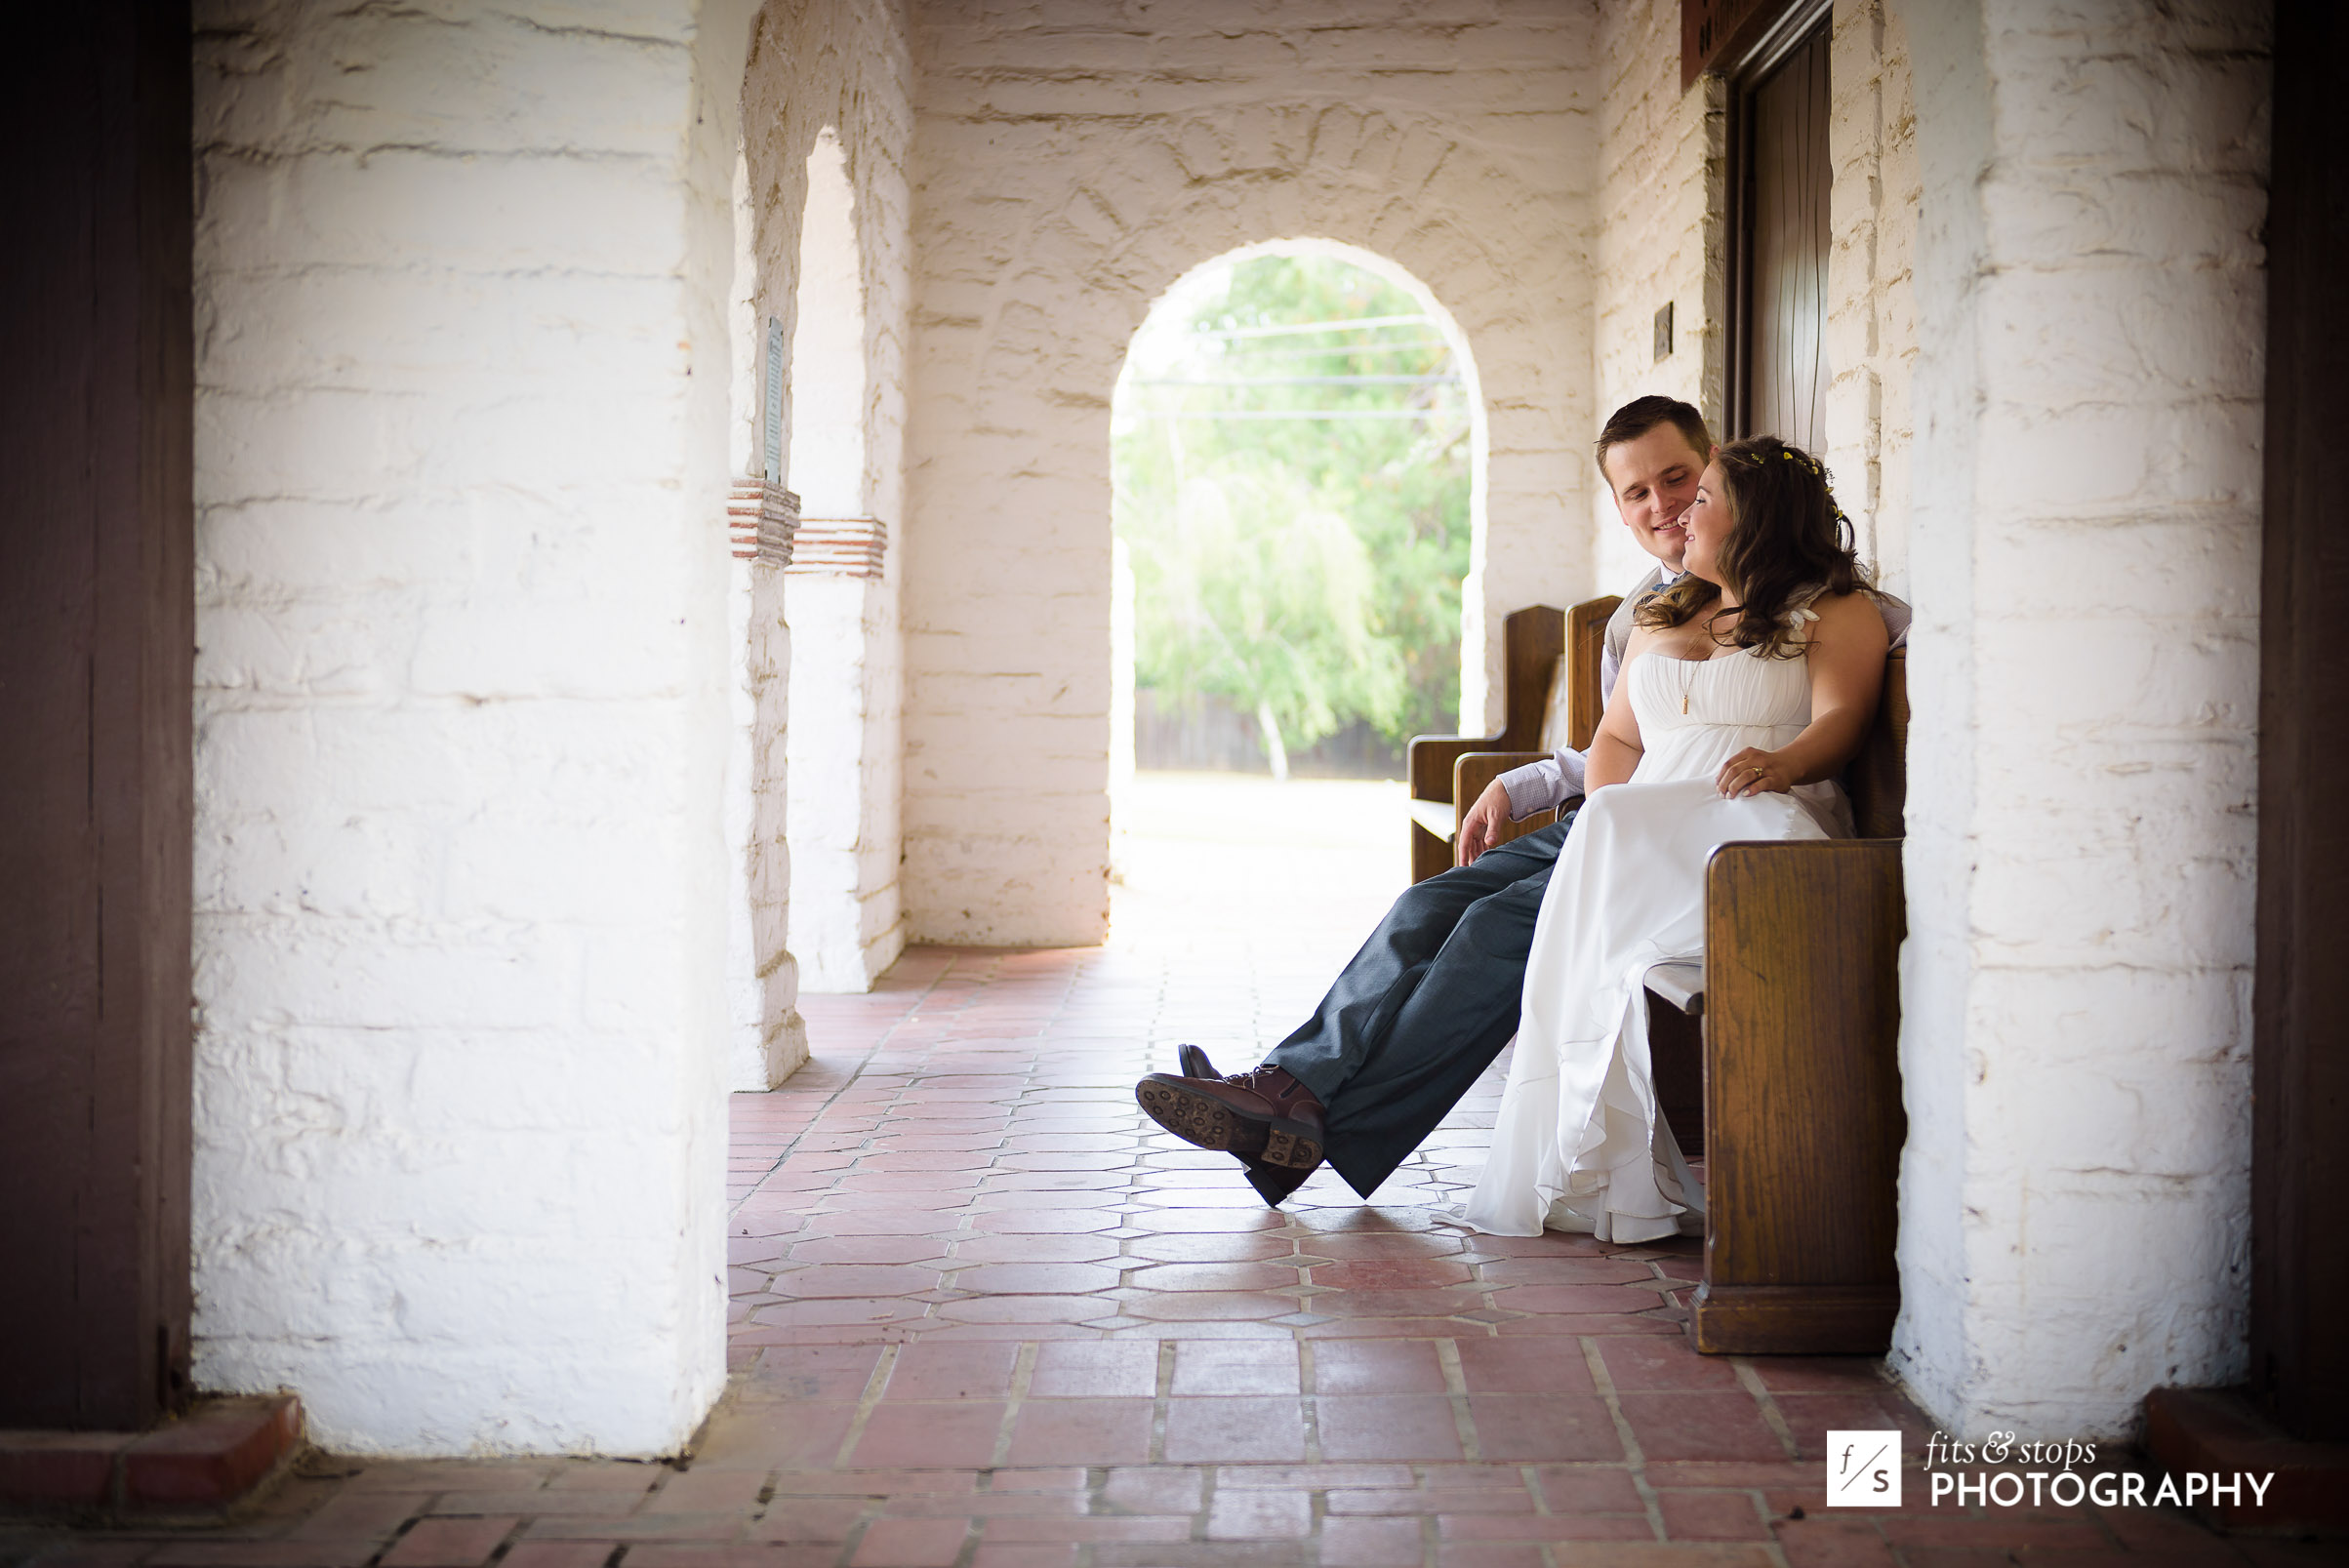 A newlywed couple sit upon a pew with an archway at Carmichael Presbyterian Church